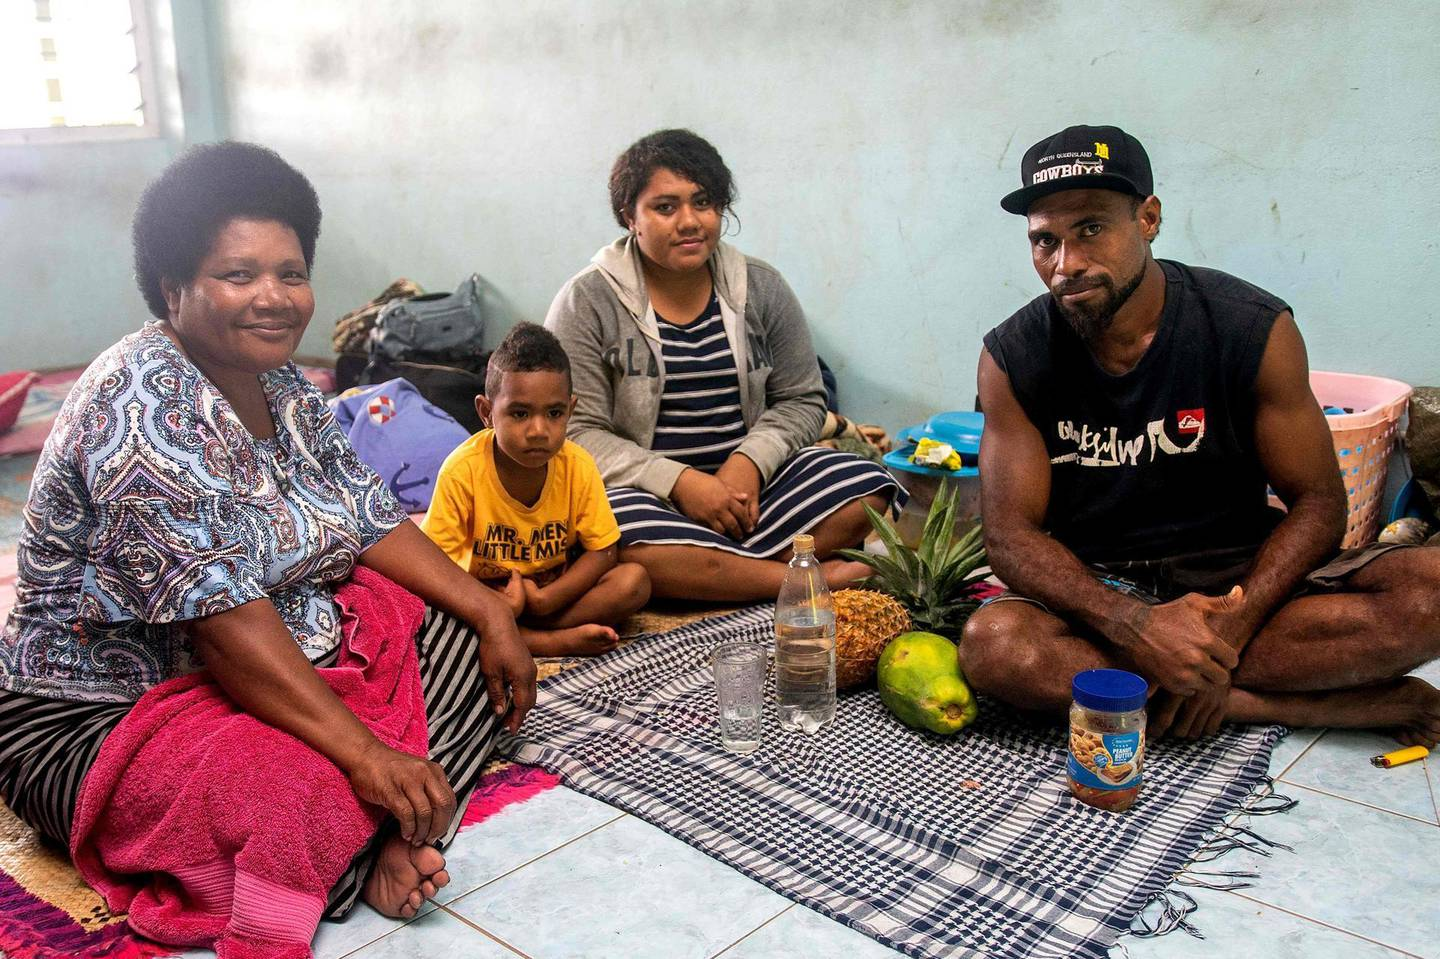 A Fijian family takes refuge in a temporary shelter from the strong damaging winds in the capital city of Suva on December 17, 2020.   Fijians were warned that no part of the Pacific island nation would escape the wrath of approaching super cyclone Yasa, expected to bring flash floods, huge waves and widespread destruction. / AFP / Leon LORD